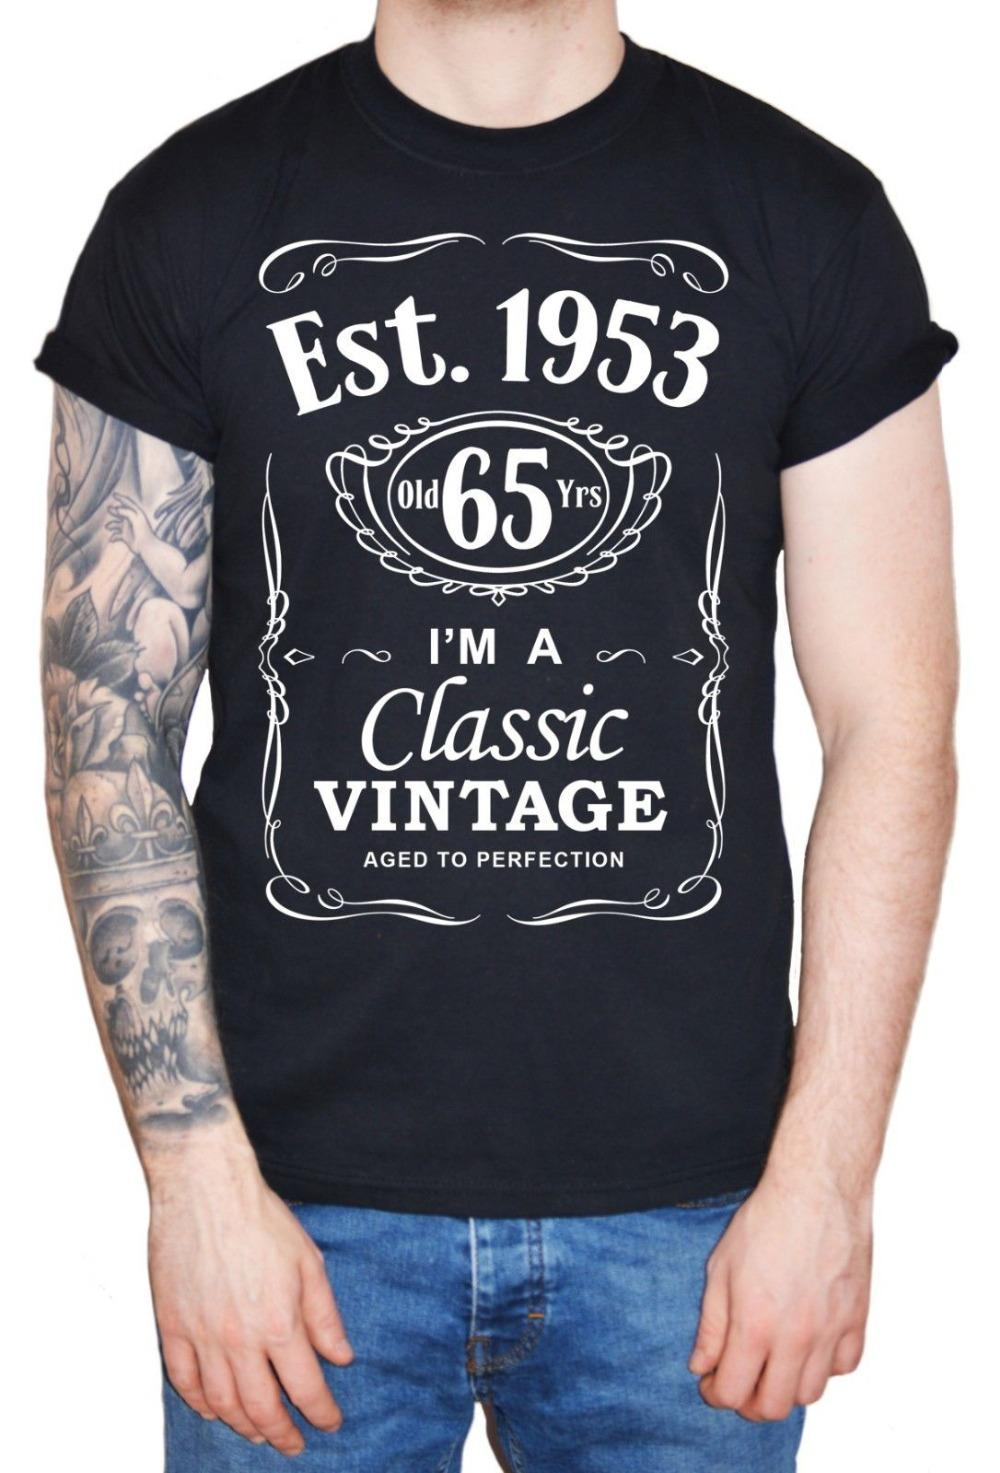 Best Funny T Shirts Comfort Soft Mens 65Th Birthday Shirt Est 1953 Vintage Man Sixty Fifth 65 Years Gift Crew Neck Quality Slogans From